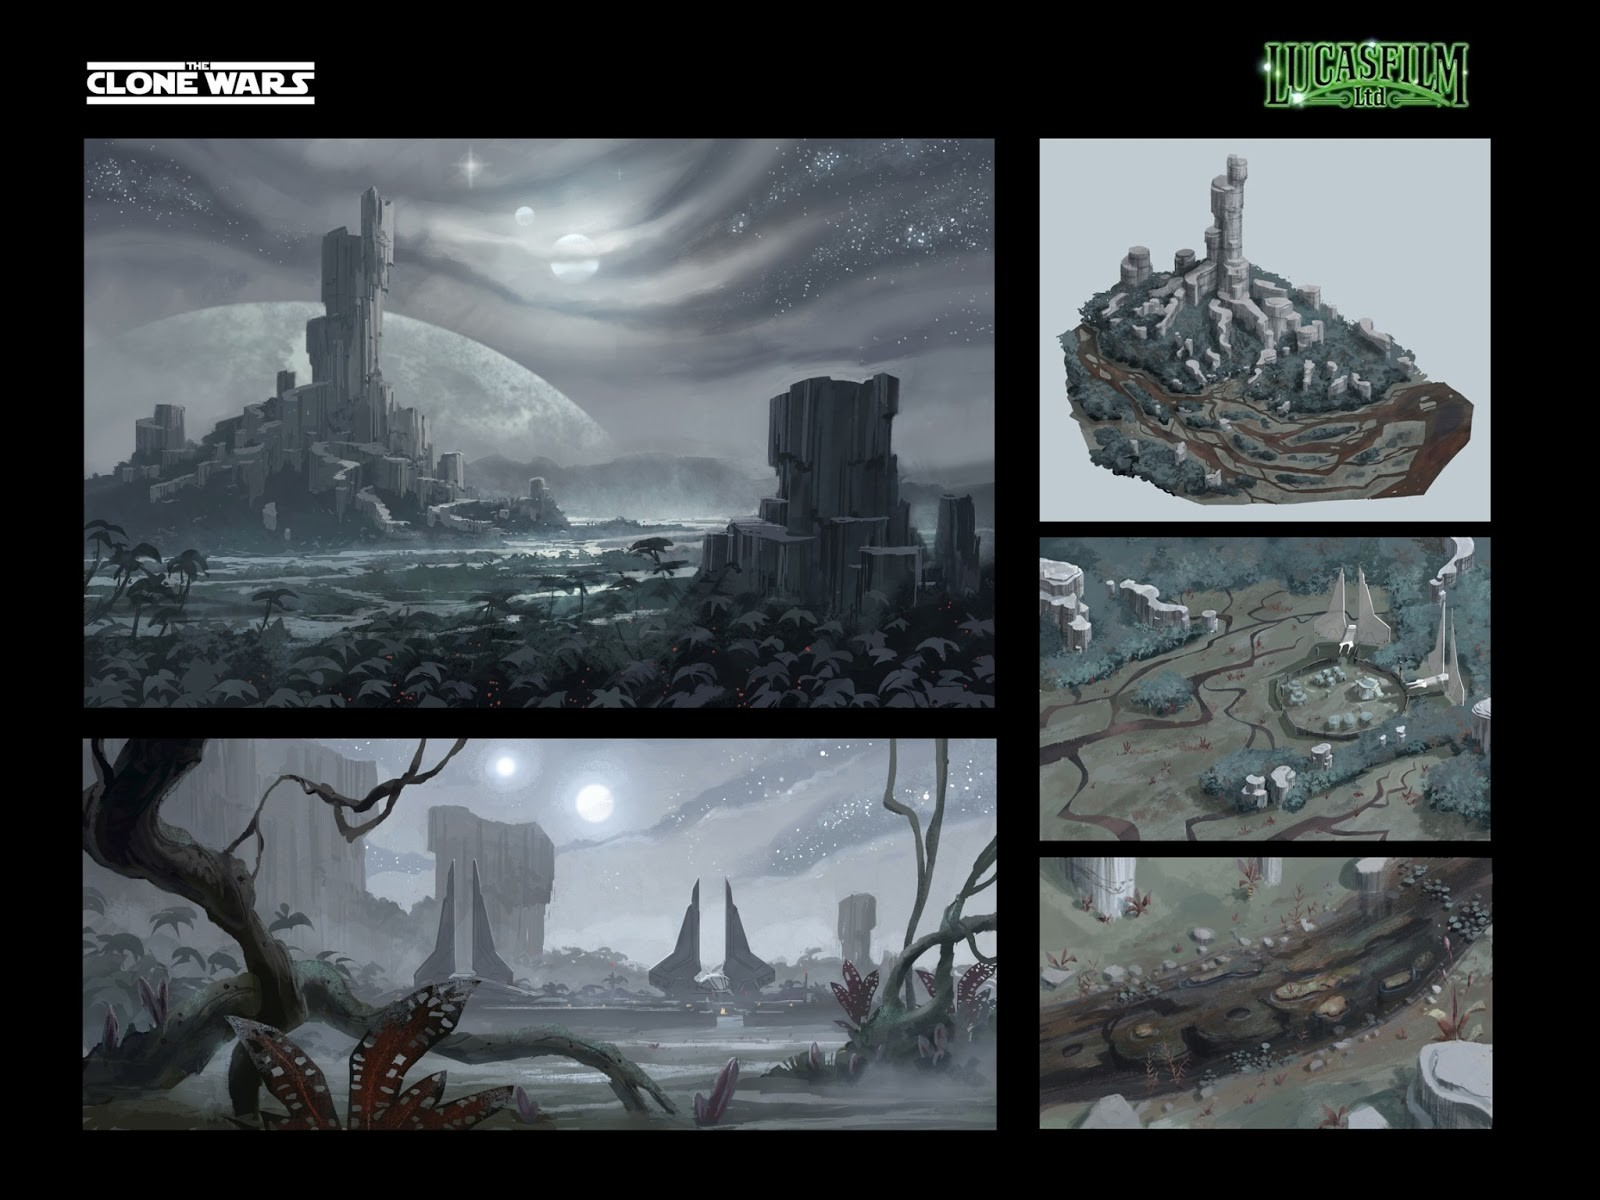 concept arts for Star Wars, the Clone Wars (2008-2012)